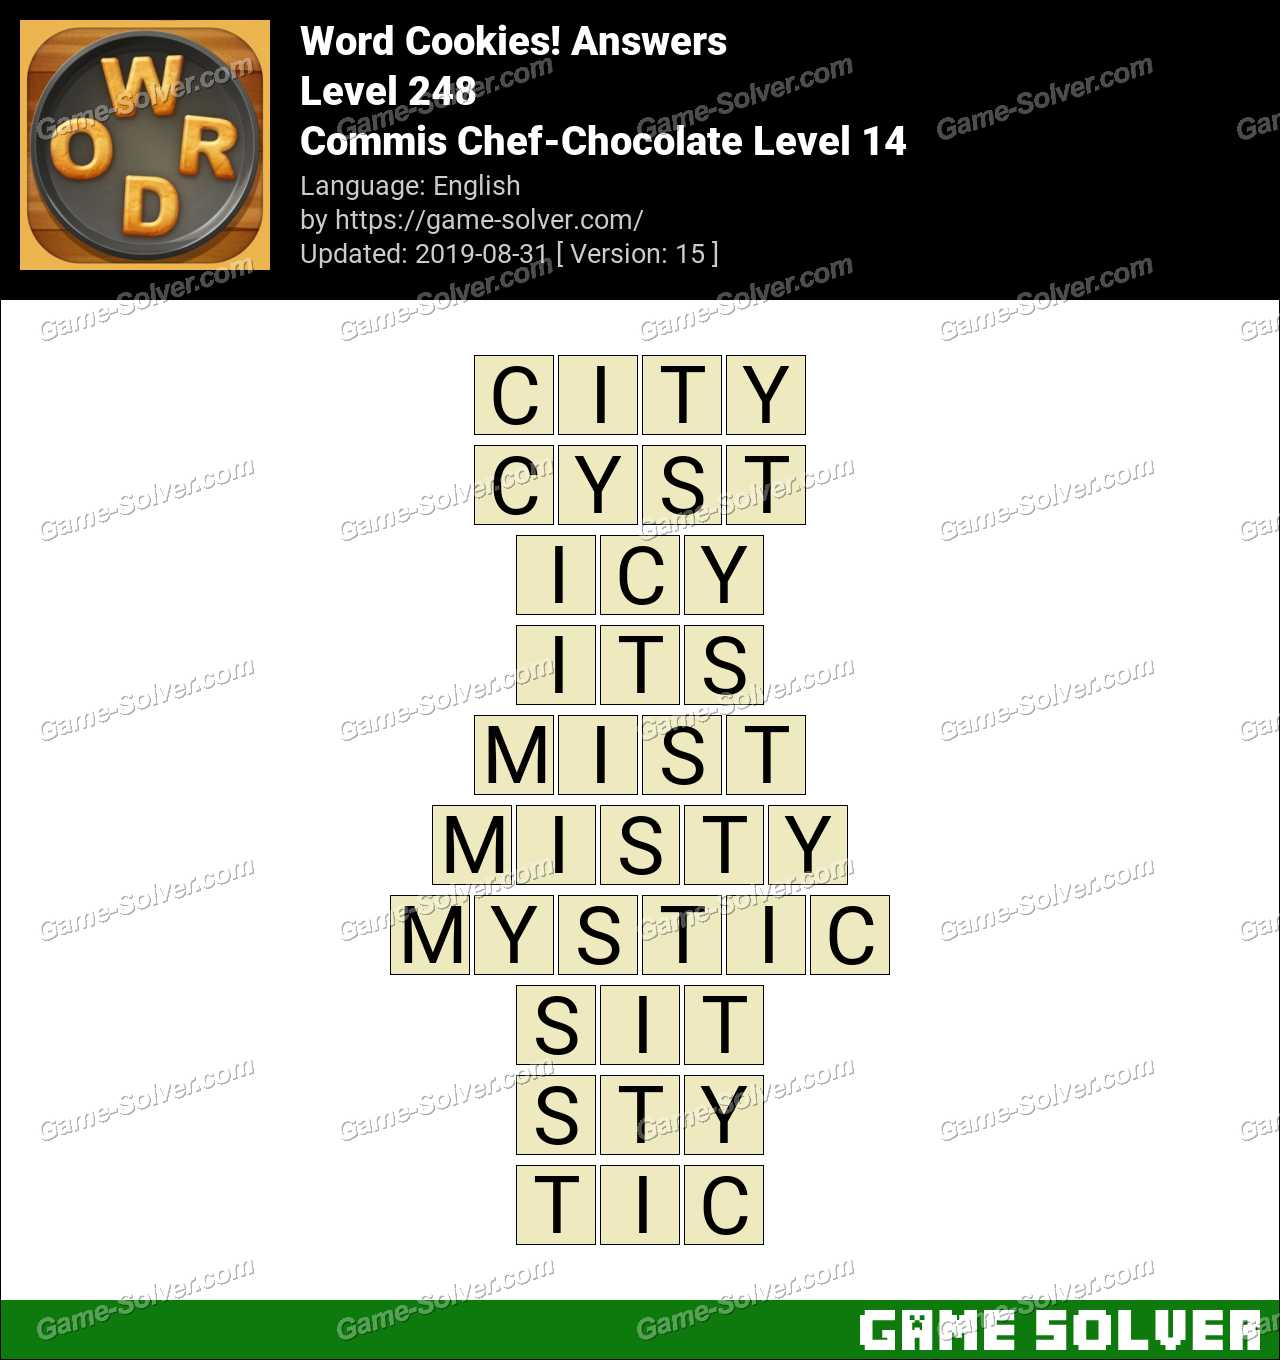 Word Cookies Commis Chef-Chocolate Level 14 Answers